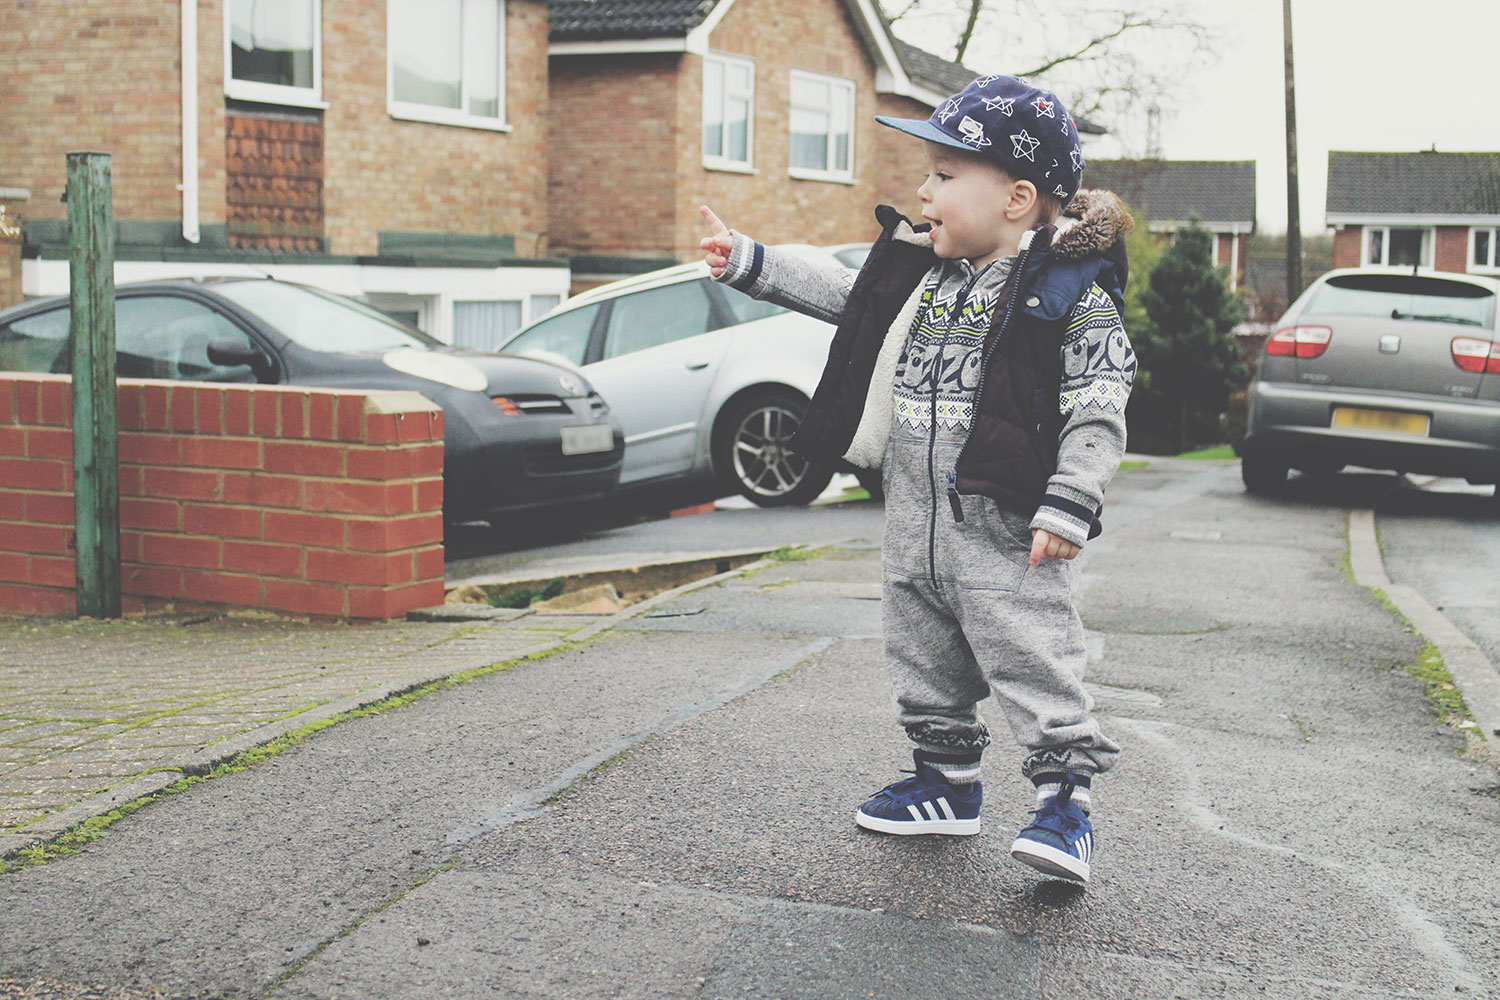 The Toddler and the Kitty - Fashion Friday is finally back! - Toddler wearing George oneside, Next gilet, Adidas shell trainers and Next baseball cap